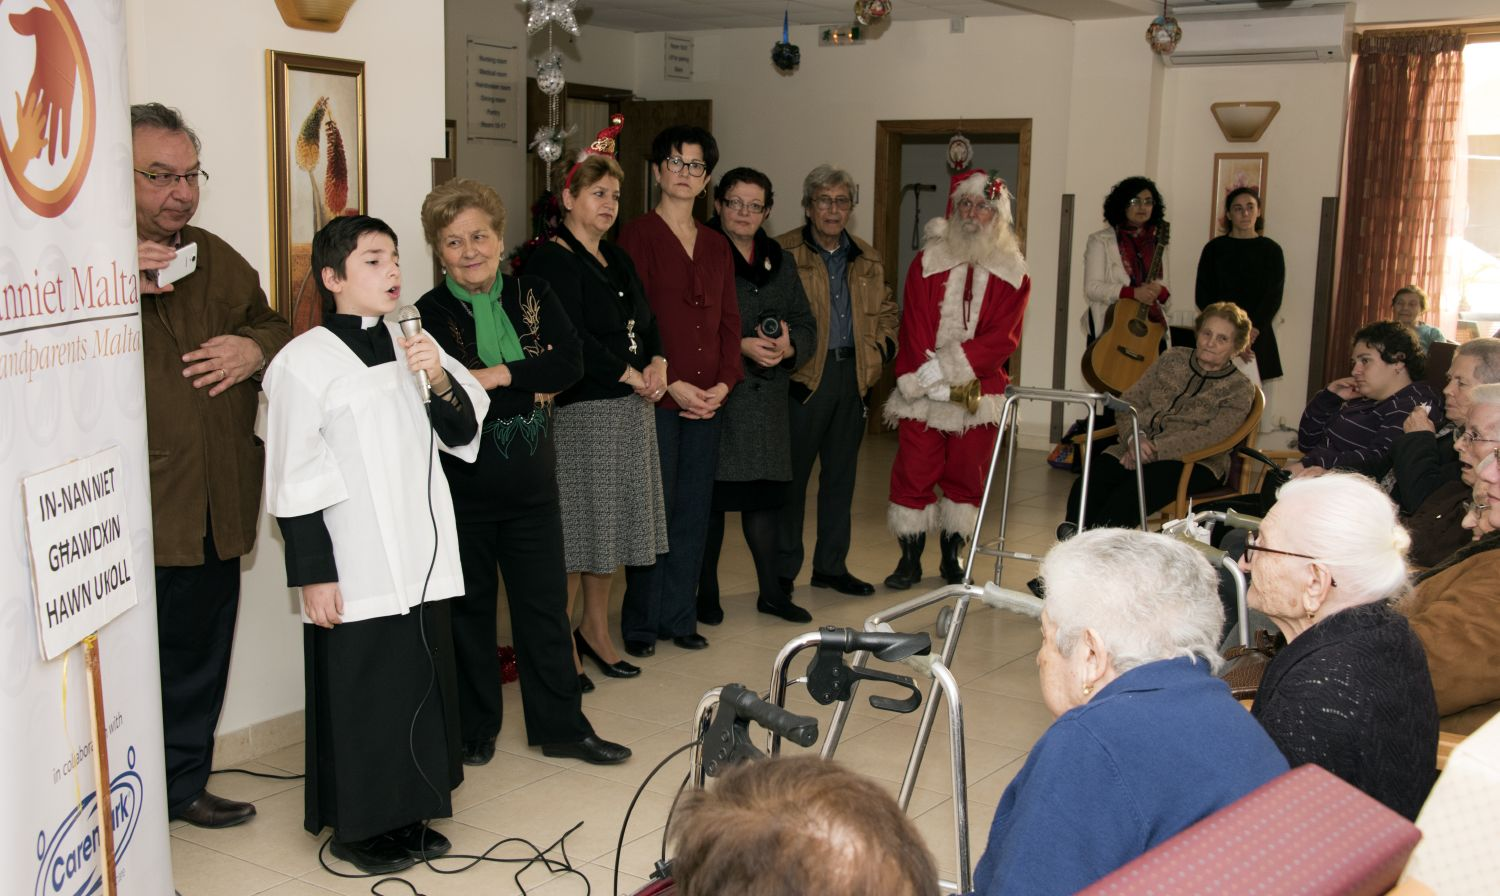 Nanniet Malta (Gozo Branch) bring festive cheer to elderly residents